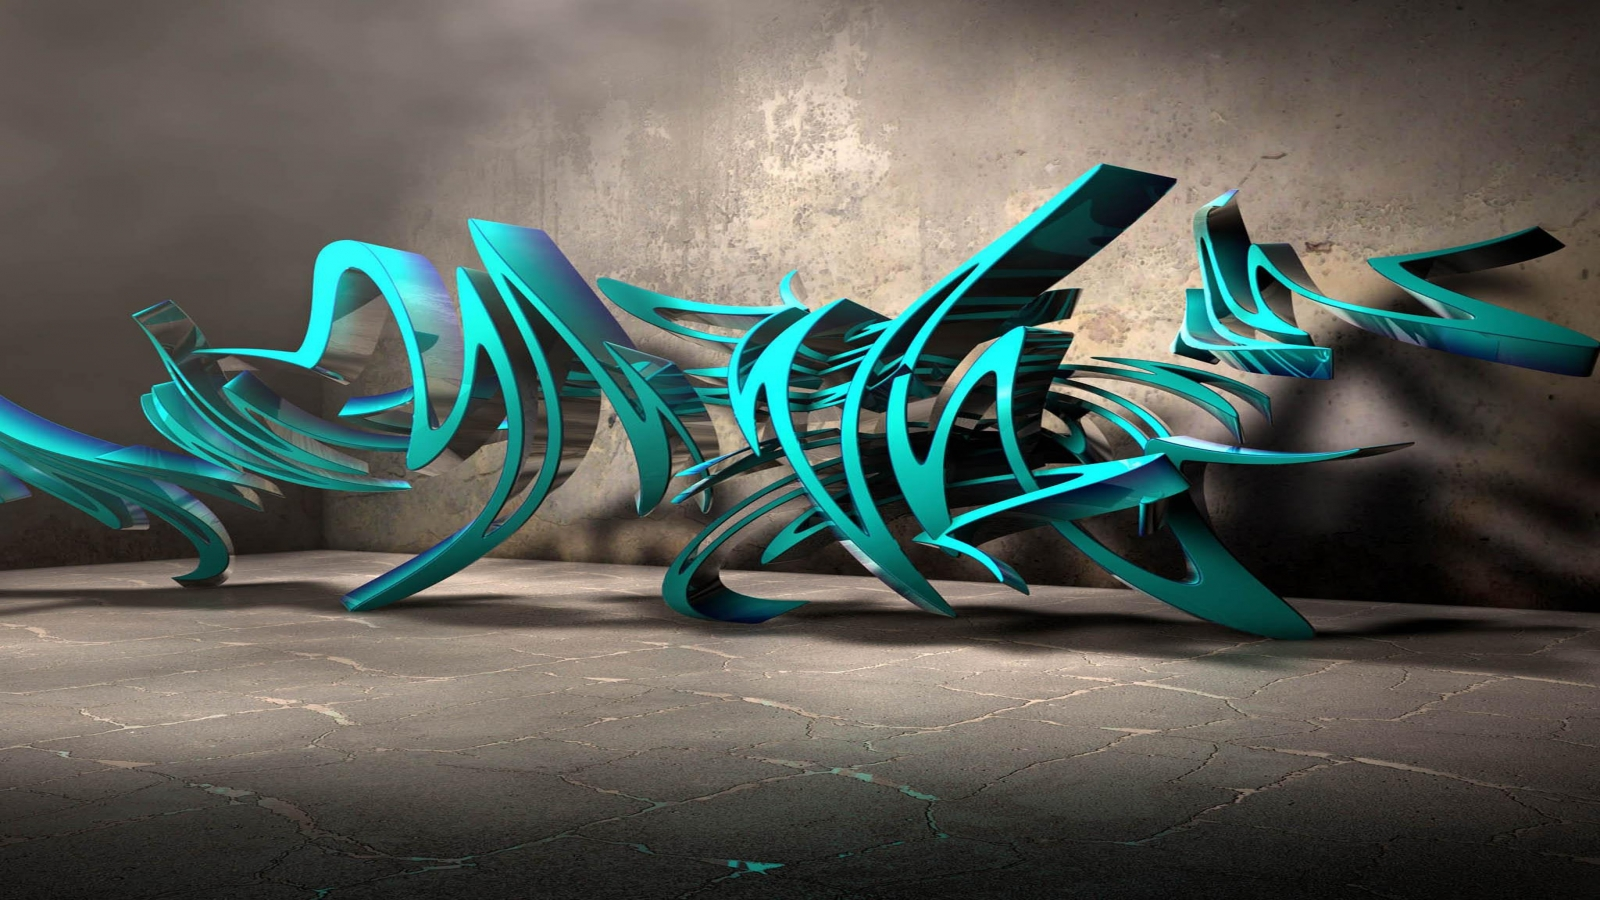 3d graffiti wallpaper wallpapersafari